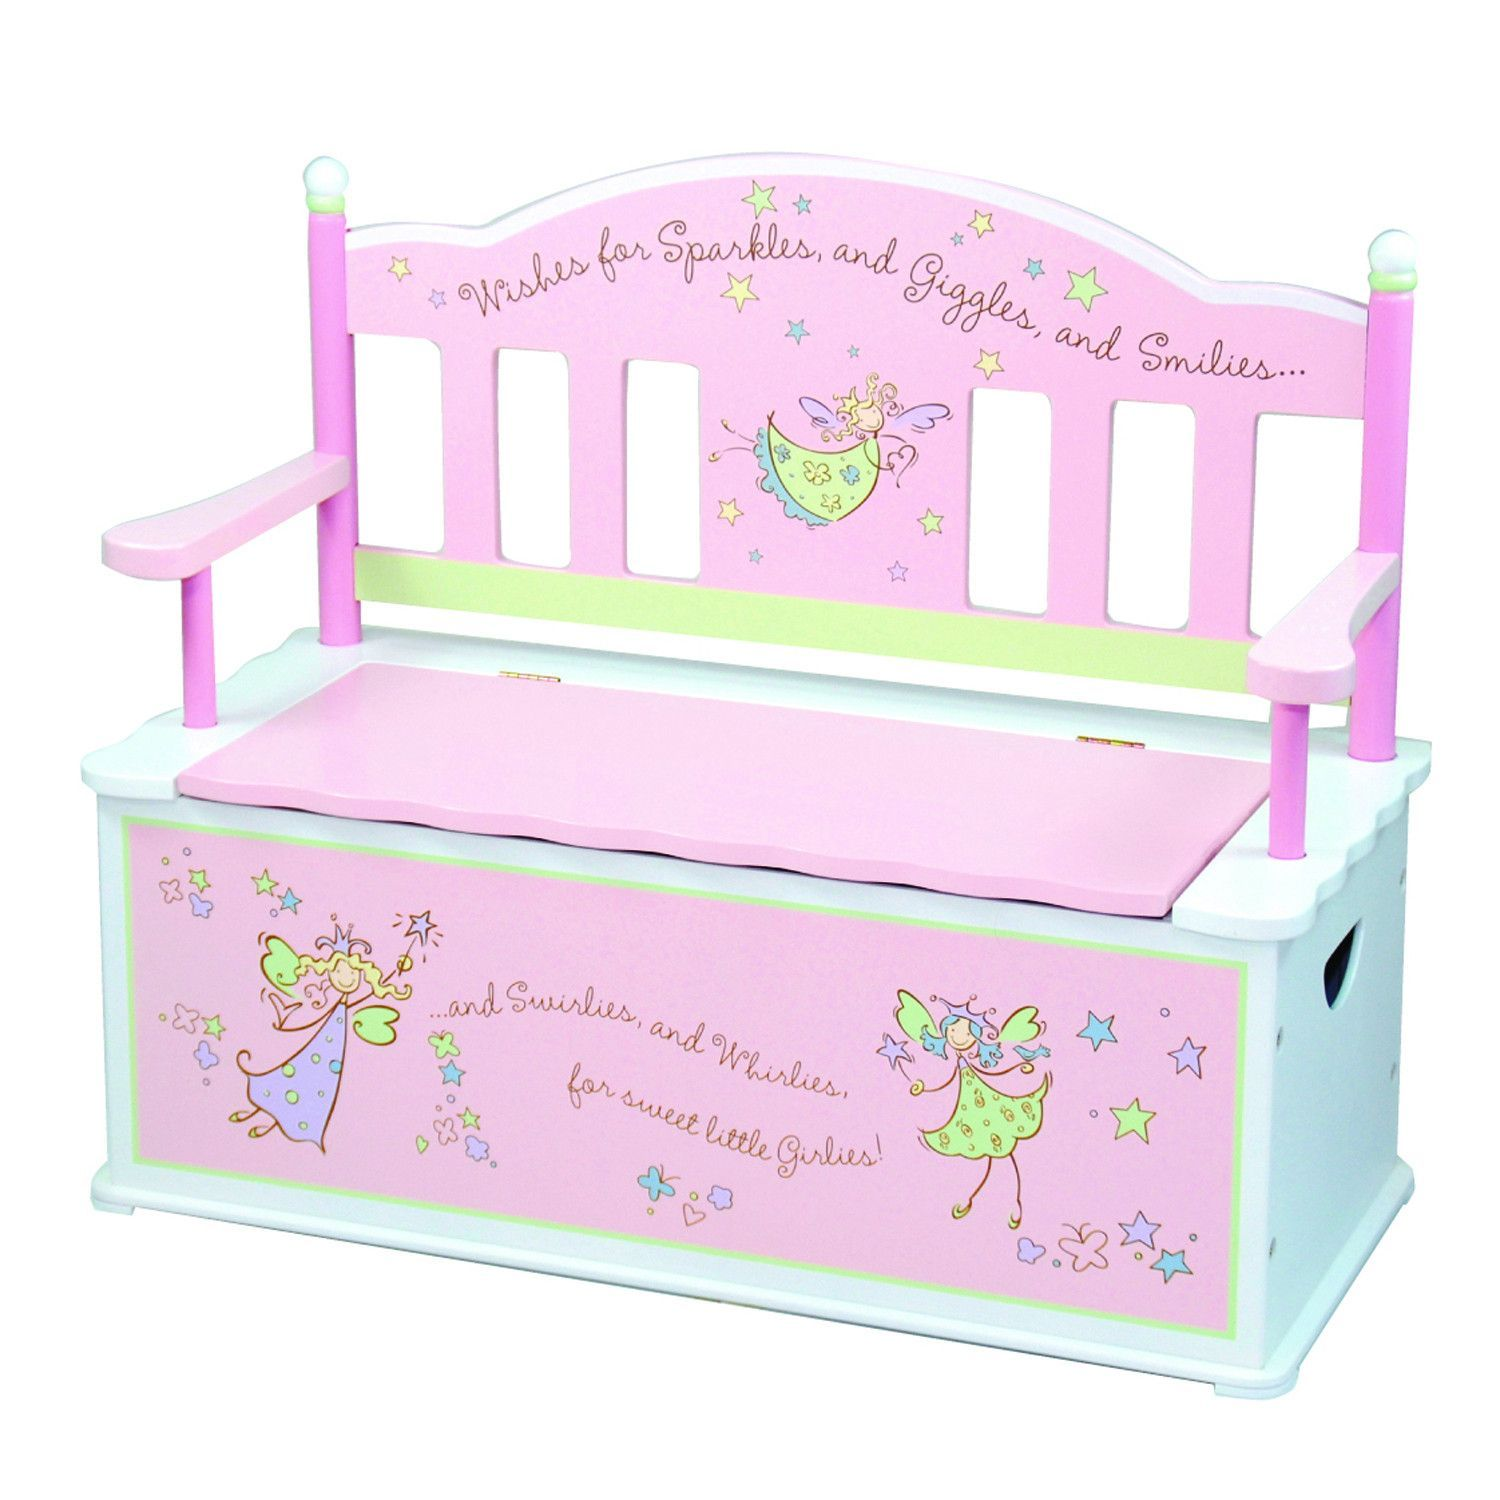 Pink Fairy Wishes Bench Seat With Storage Toy Box Seating: Levels Of Discovery Fairy Wishes Bench Seat W/ Storage